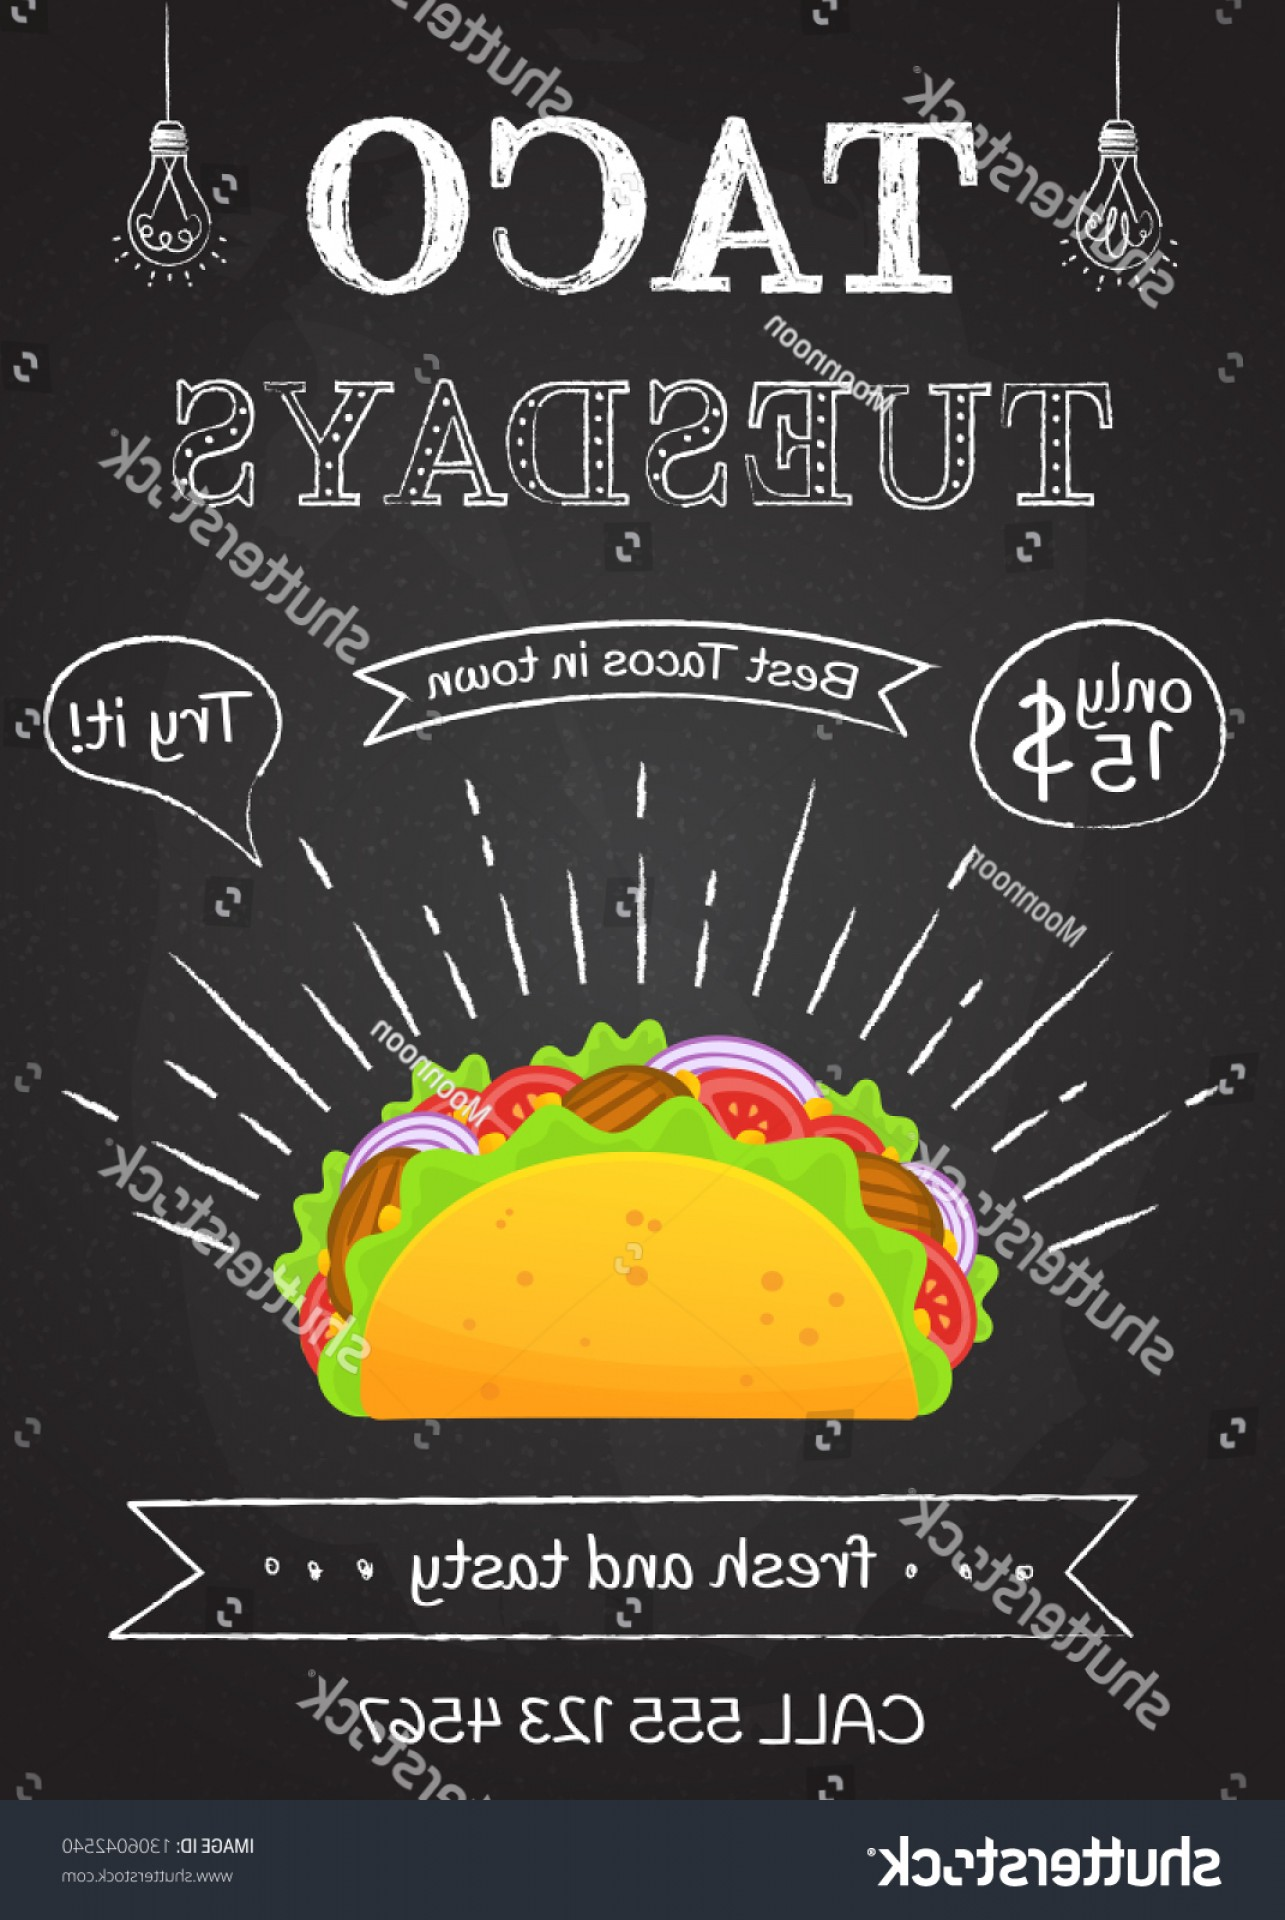 Steak Taco Vector Art: Traditional Mexican Food Taco Tuesday Poster